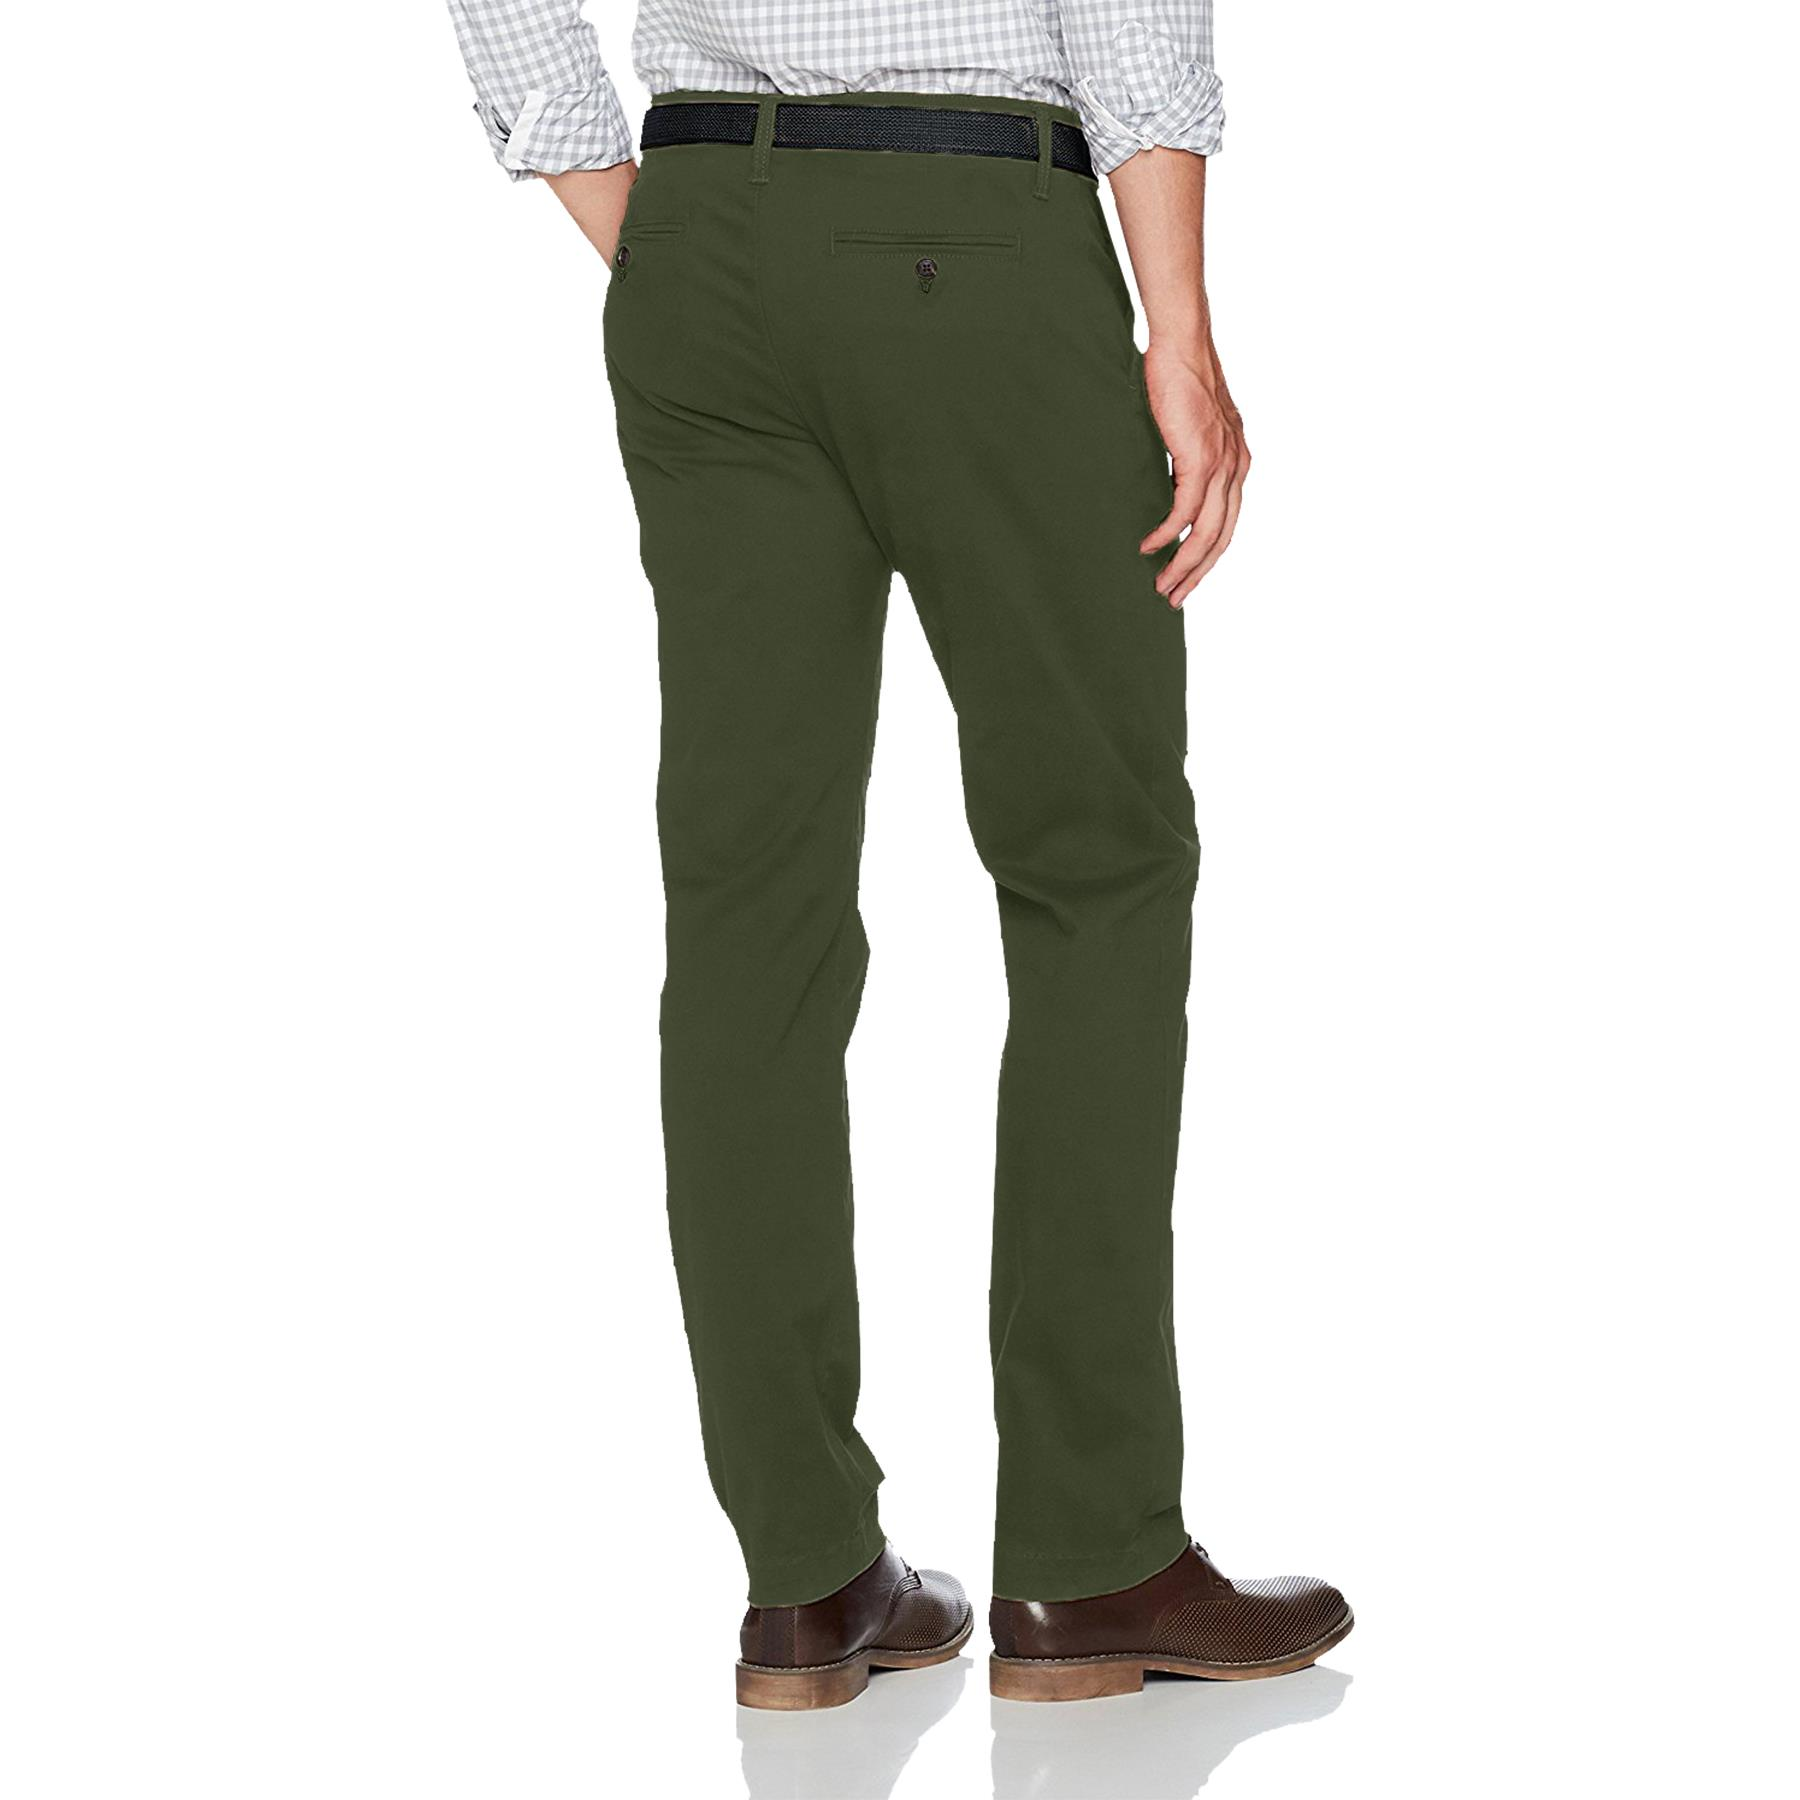 New-Mens-Ex-Store-Chino-Trousers-Regular-Fit-Straight-Cotton-Casual-Work-Pants thumbnail 11